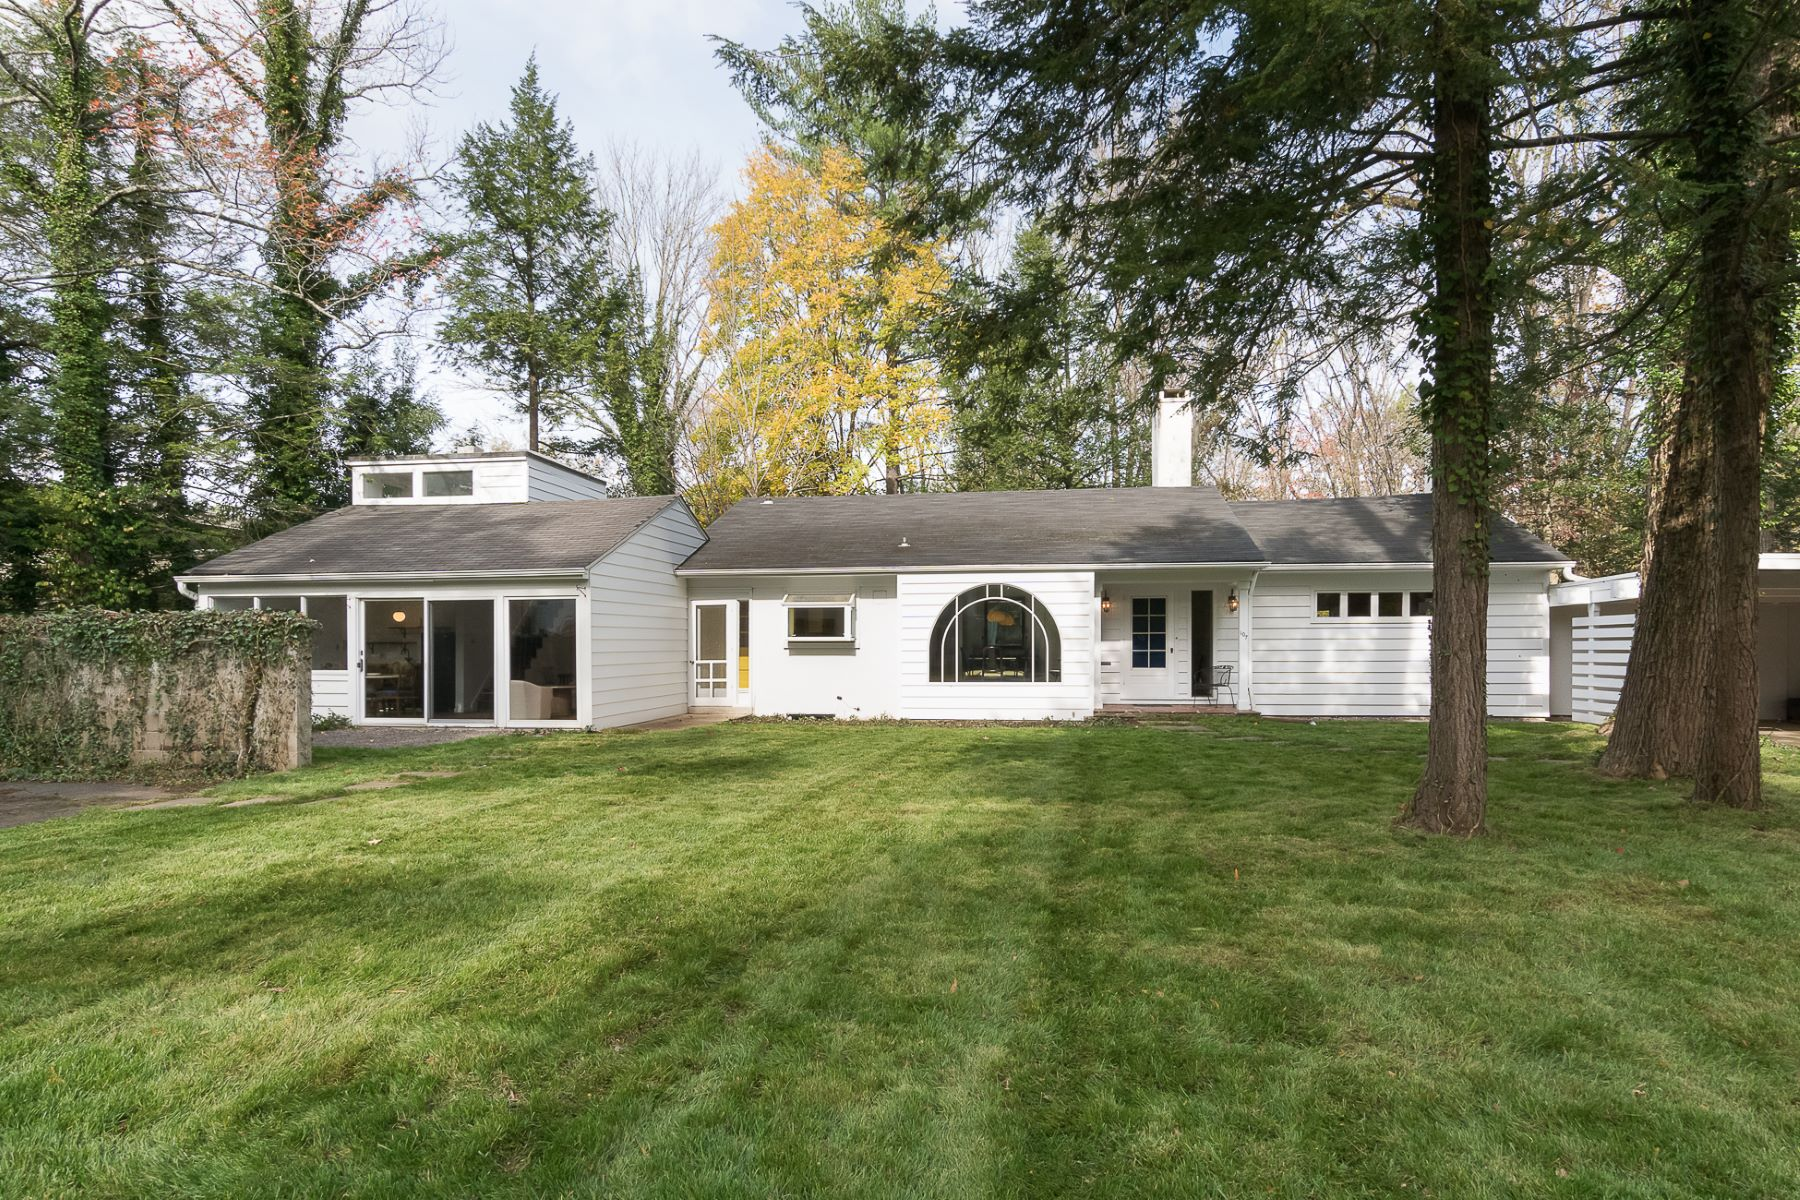 Single Family Homes for Sale at Mid-Century House with Great Bones 107 Westcott Road, Princeton, New Jersey 08540 United States